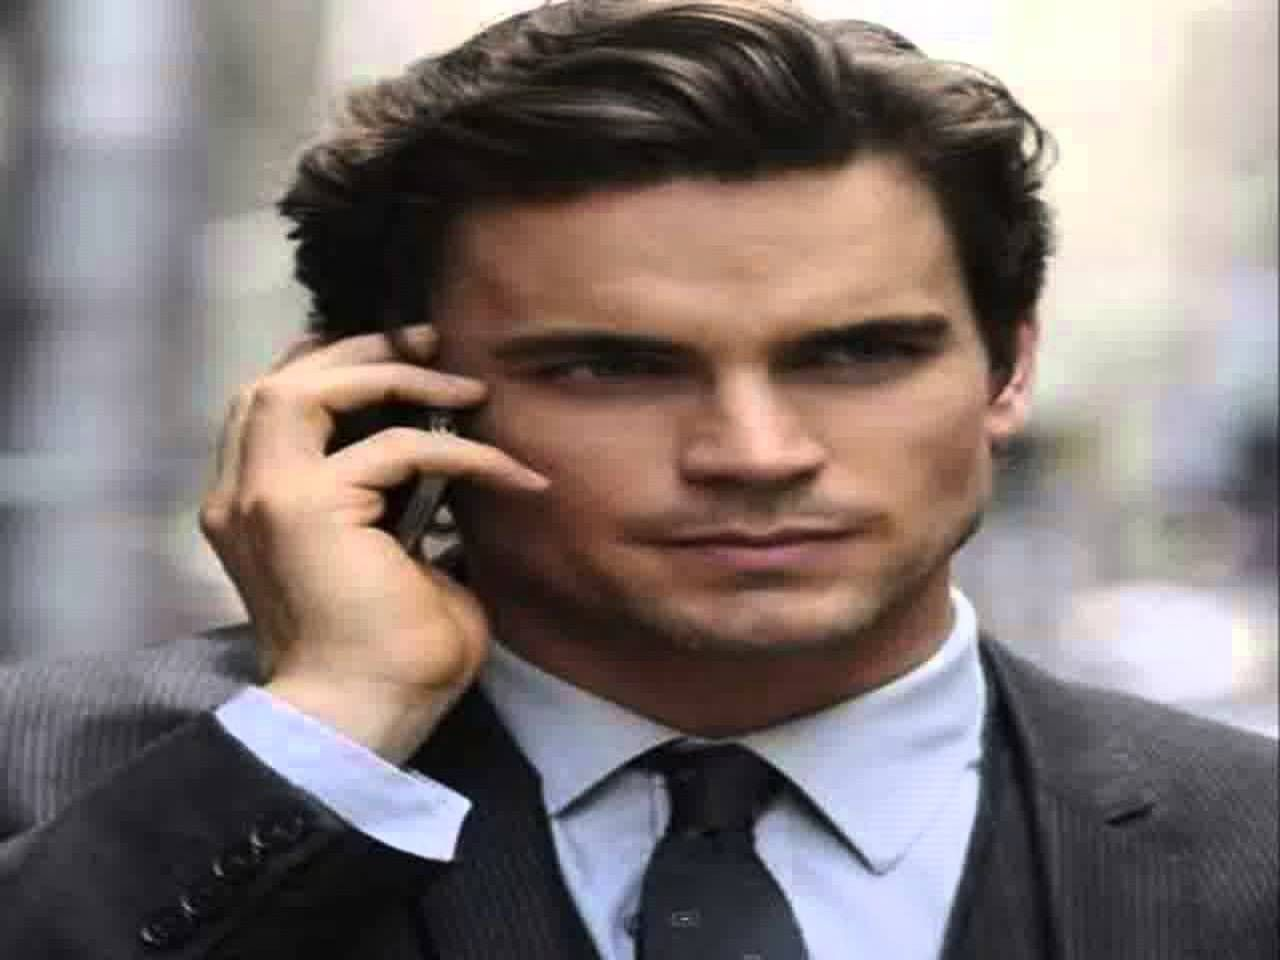 Medium Long Hairstyles Guys Best Medium Long Hairstyles For Men Youtube Rambut Pendek Pria Rambut